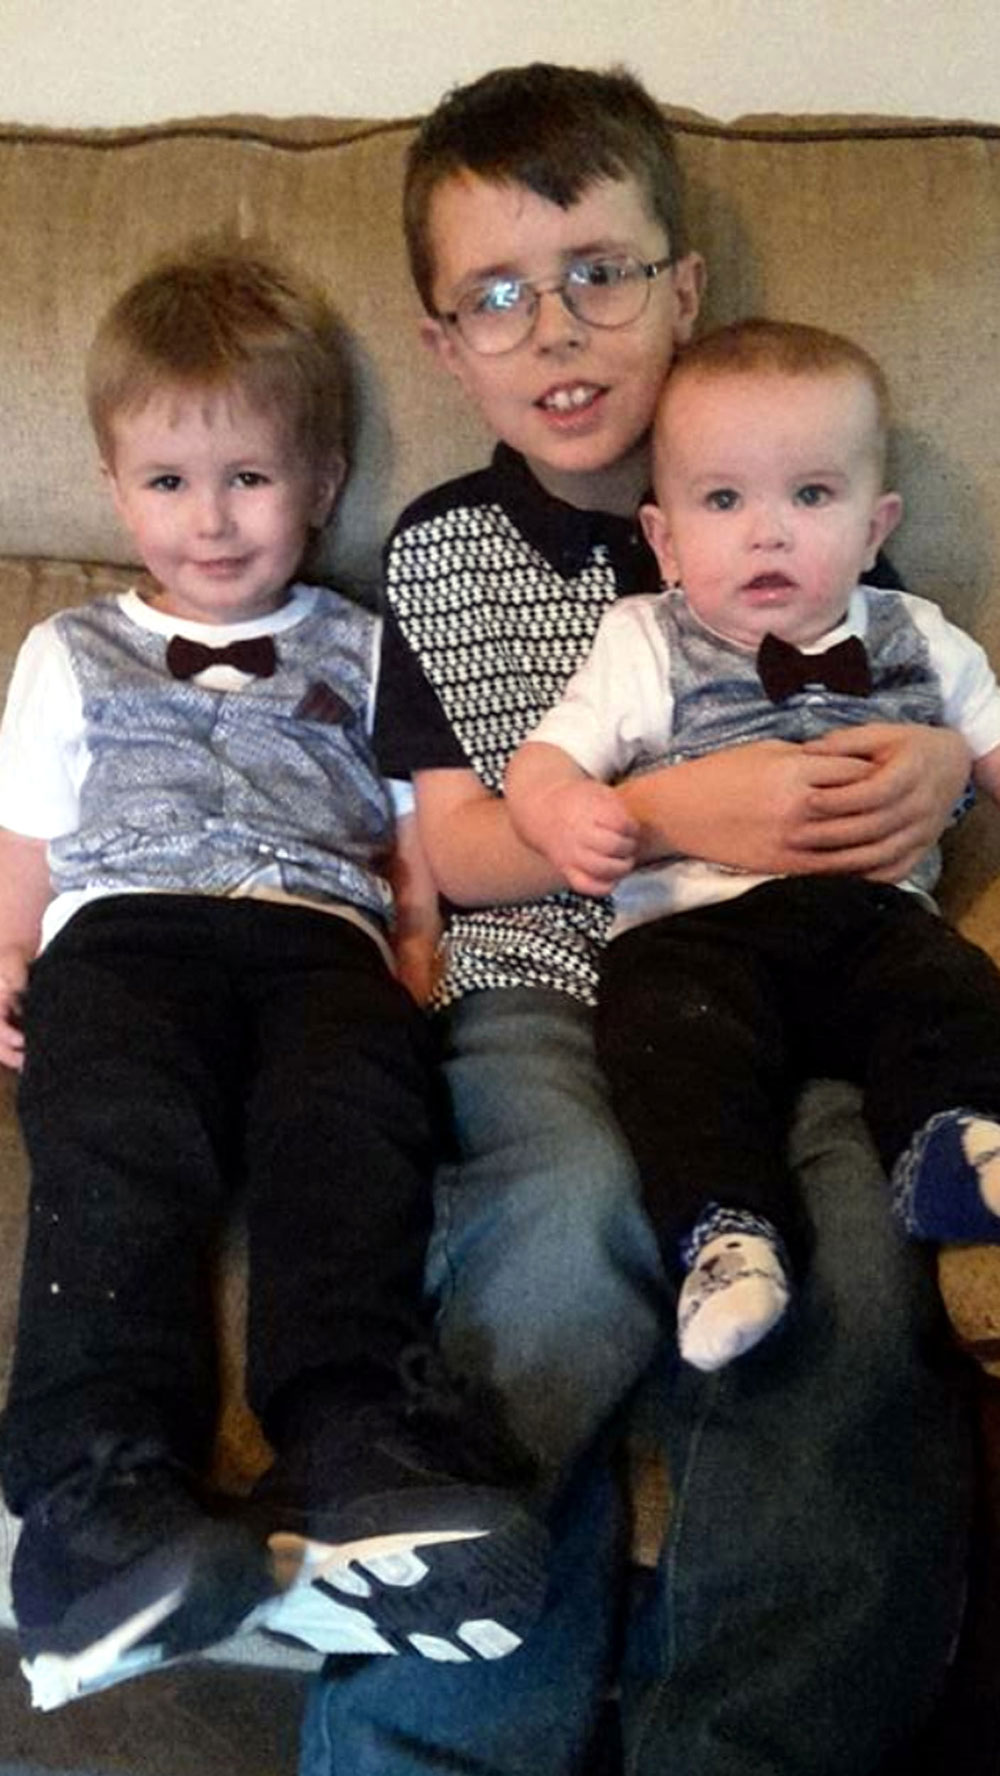 Paddy's three children, two of whom were in the car during the incident